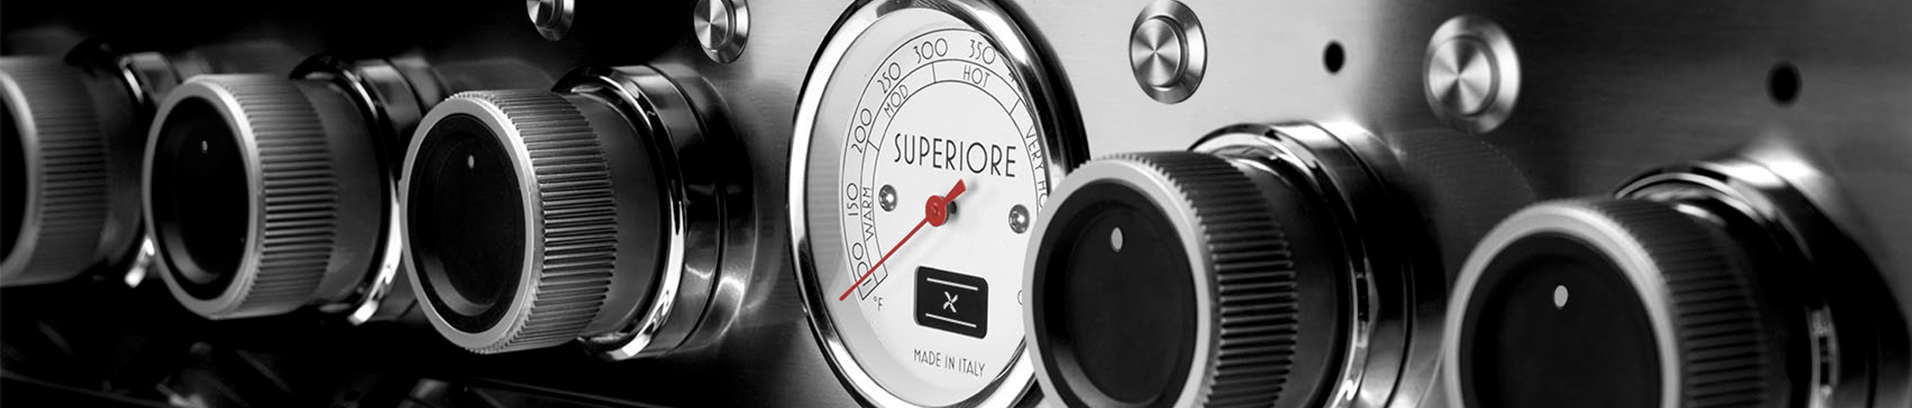 Superiore Range Control Panel Close-up